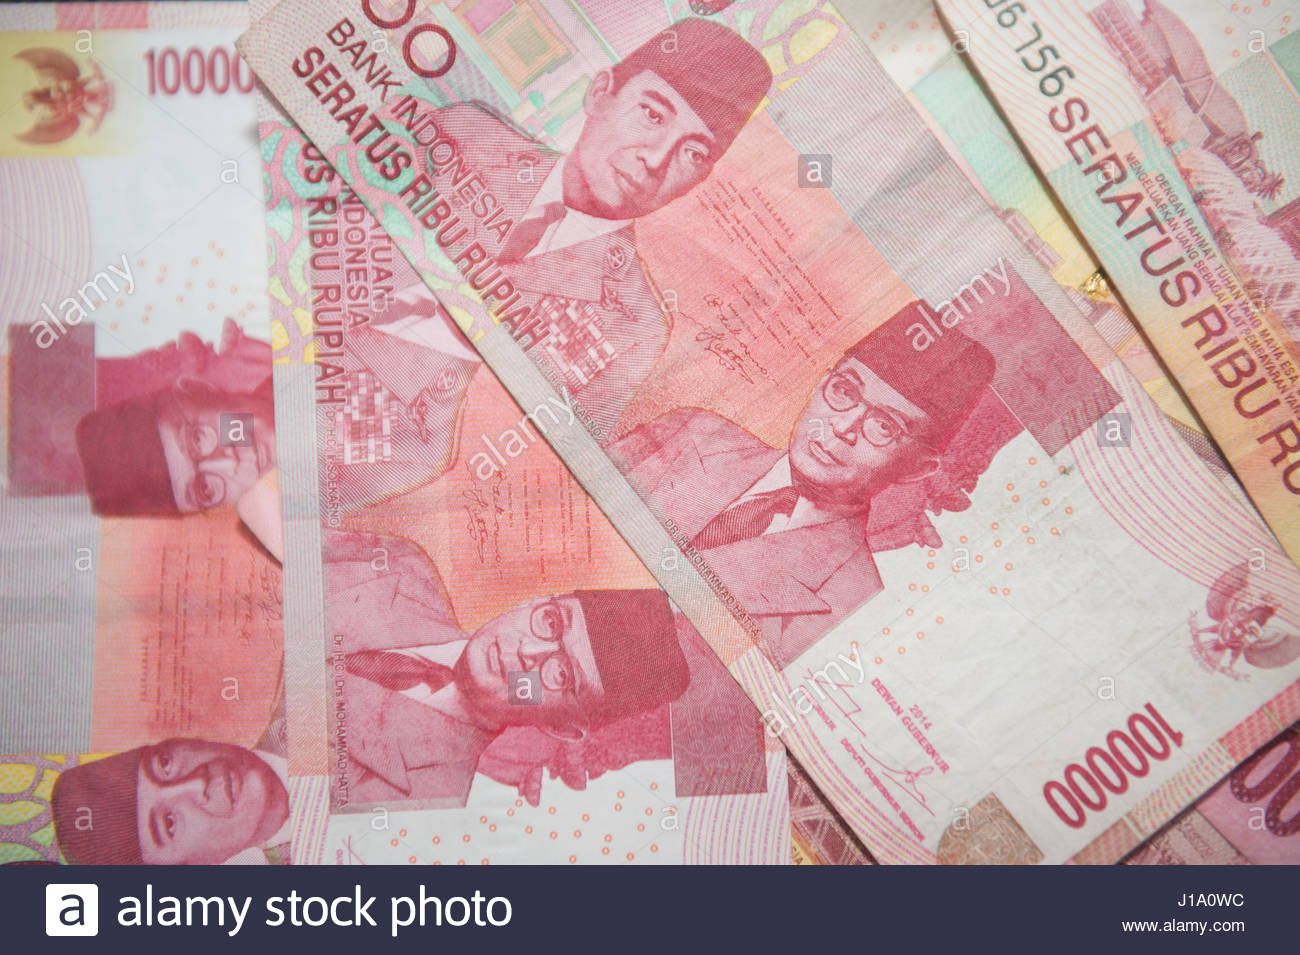 Indonesian banknotes depicting Soekarno and Mohammed Hatta. - Stock Image